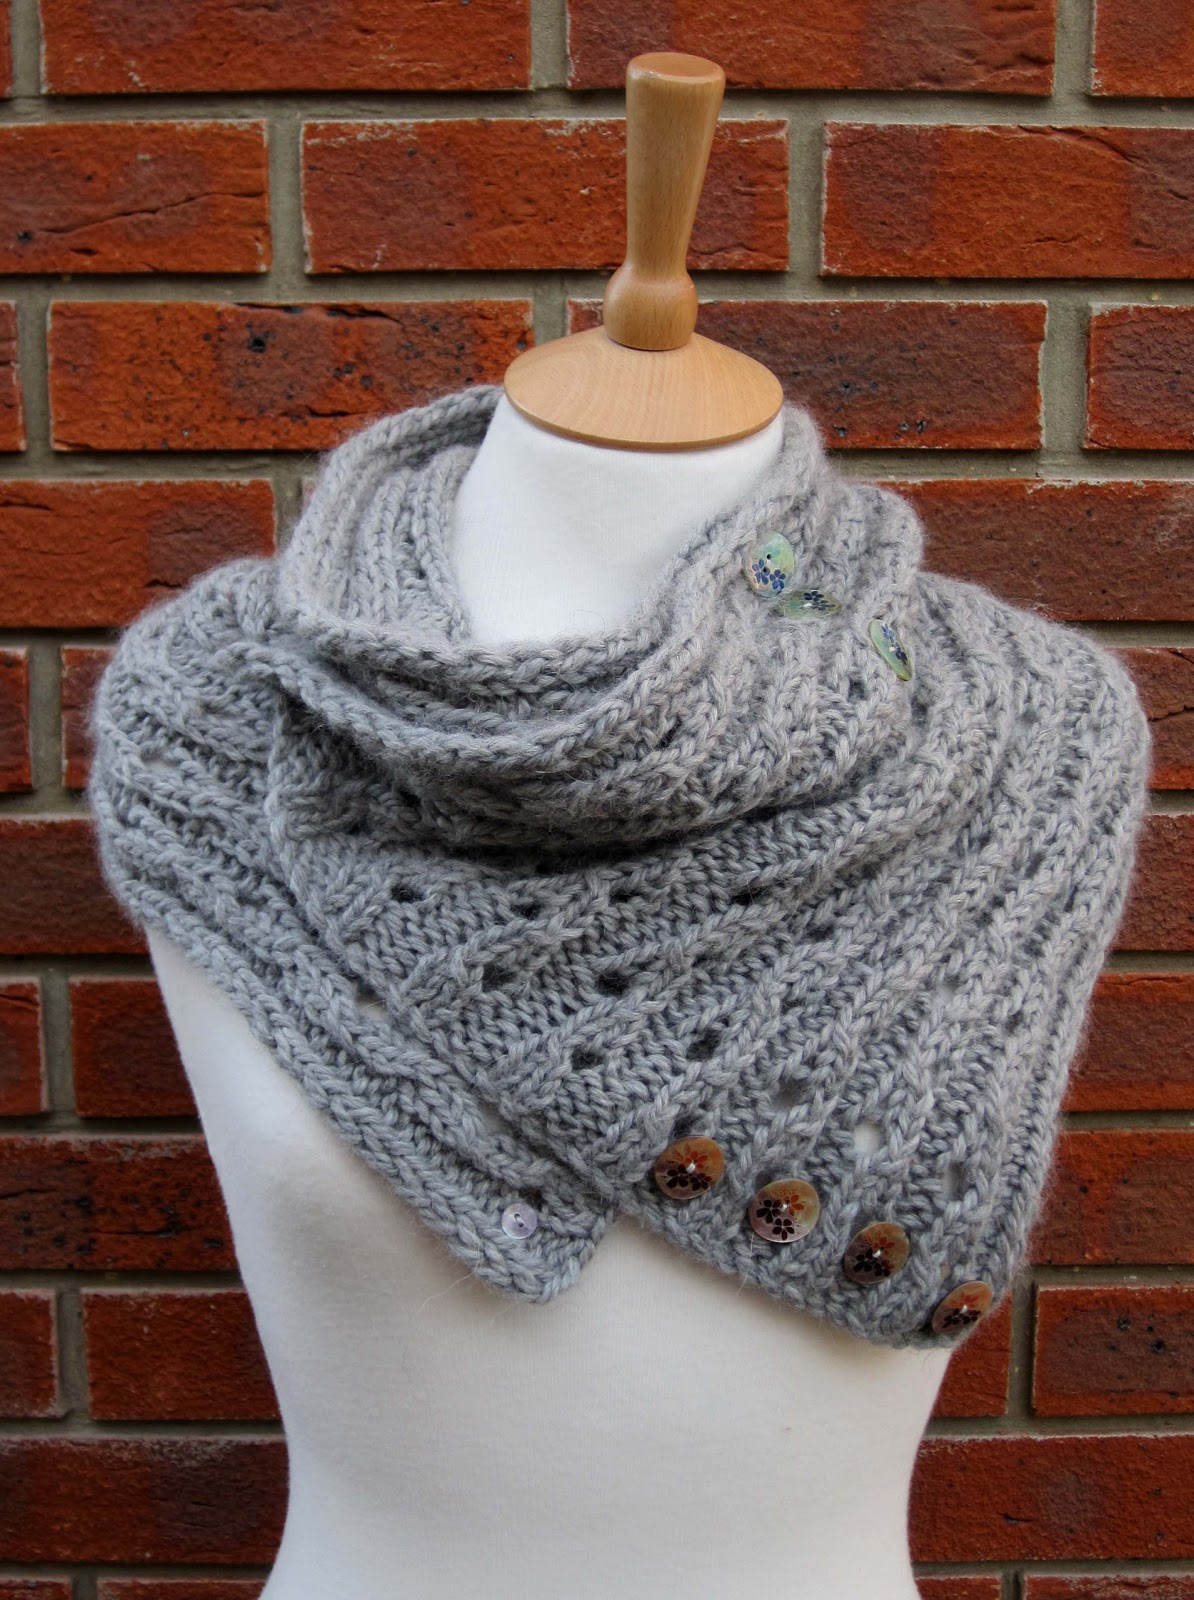 Knitting and More: Rib Lace Scarf/Cowl